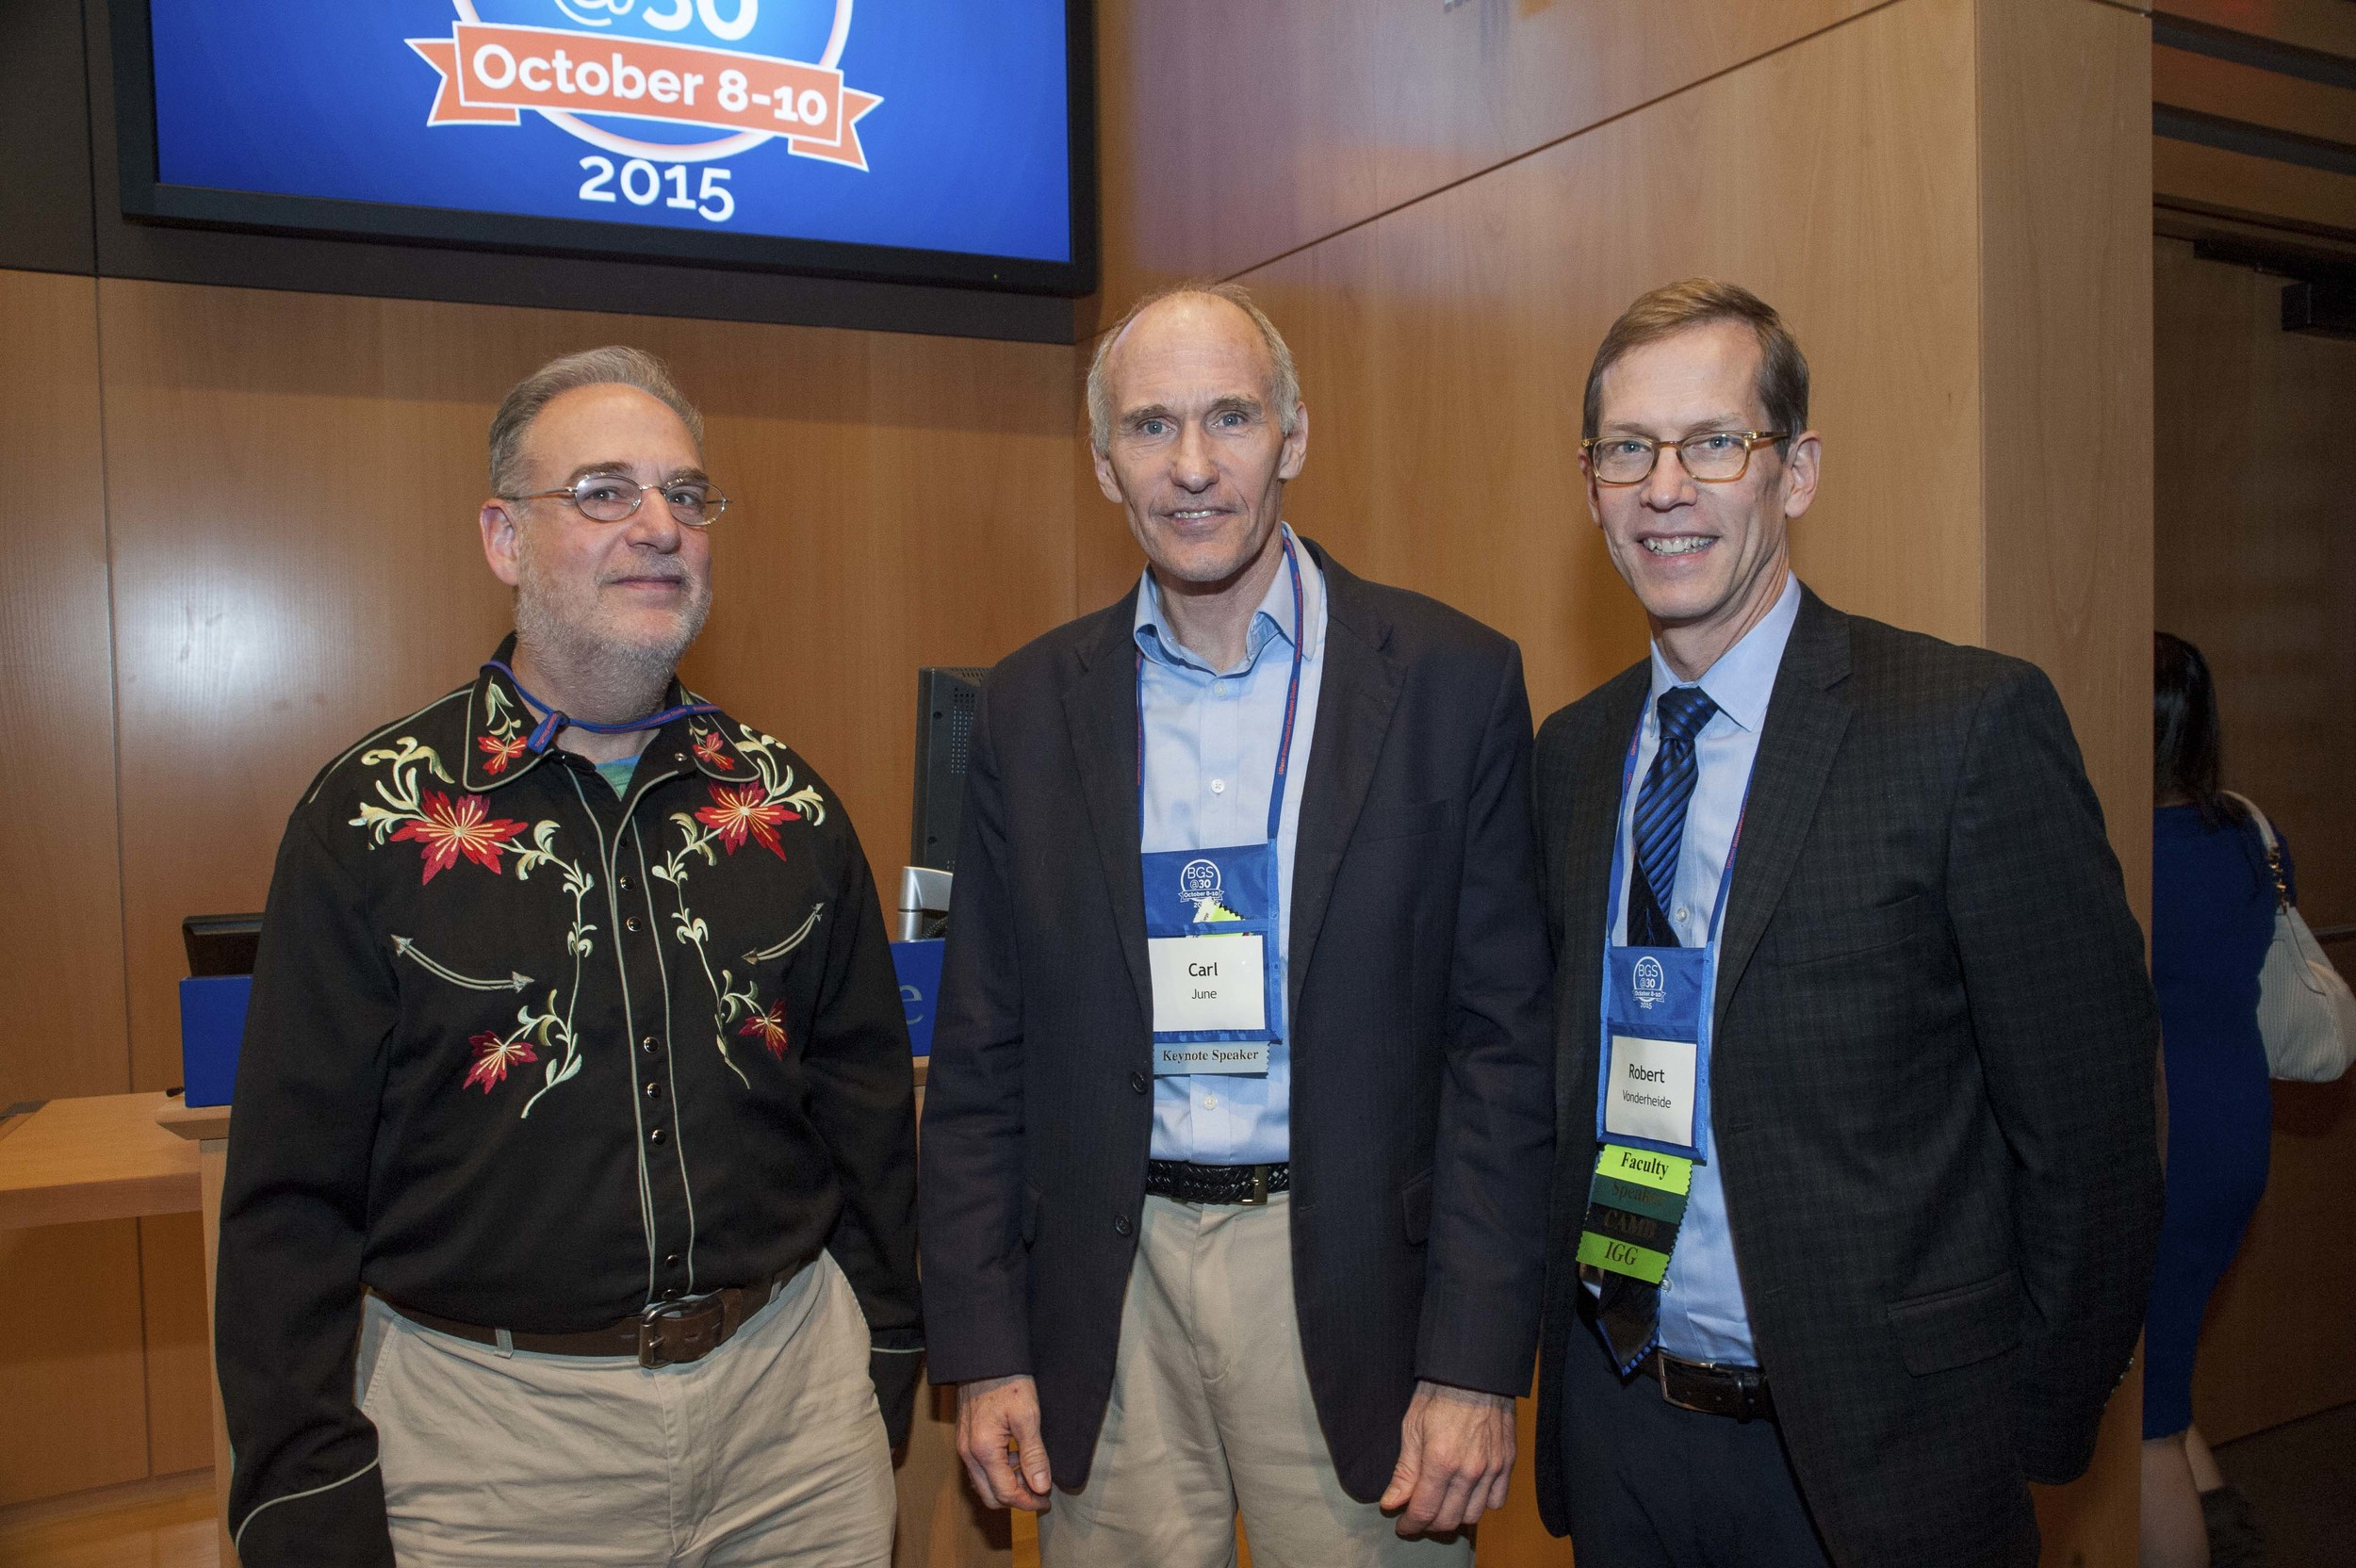 Mikey Nusbaum, Carl June, and Robert H. Vonderheide, MD, DPhil,Hanna Wise Professor in Cancer Research; Associate Director for Translational Research, Abramson Cancer Center; Vice Chief for Research, Hematology-Oncology Division, Department of Medicine